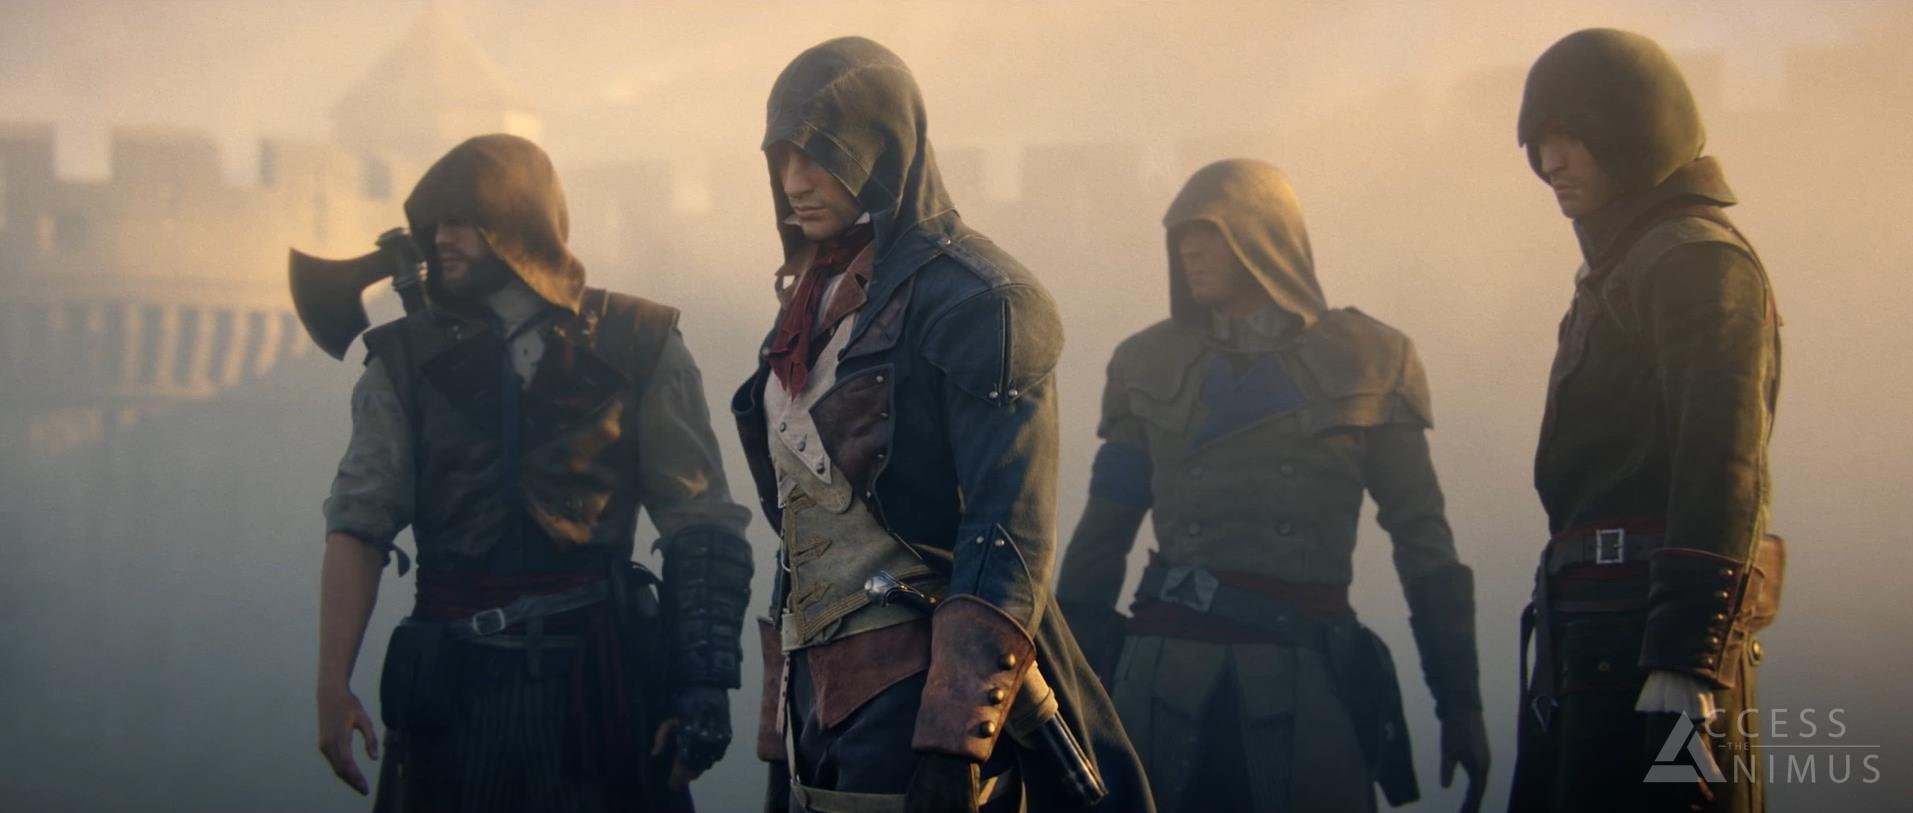 Assassins Creed Unity Everything You Need To Know About This